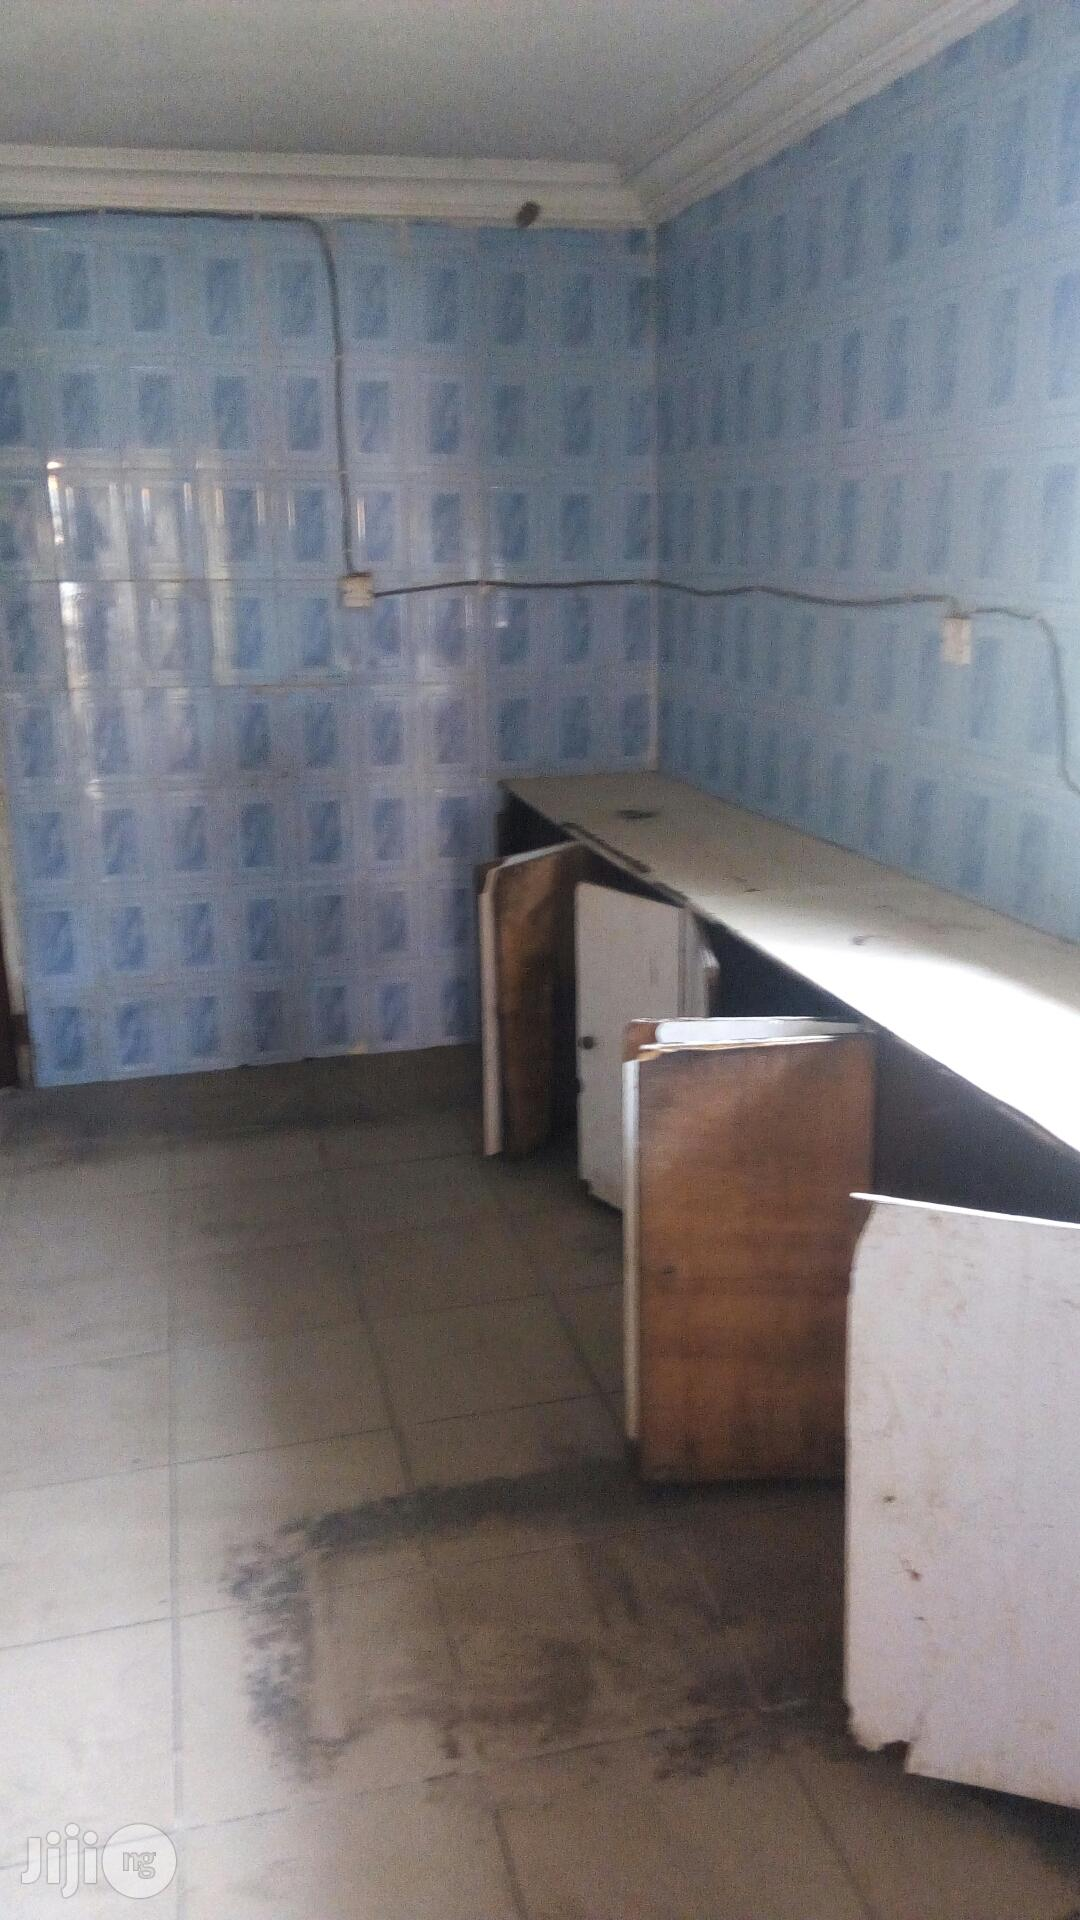 5 Bedroom Duplex With 3 Room Bq For Lease For Commercial Use